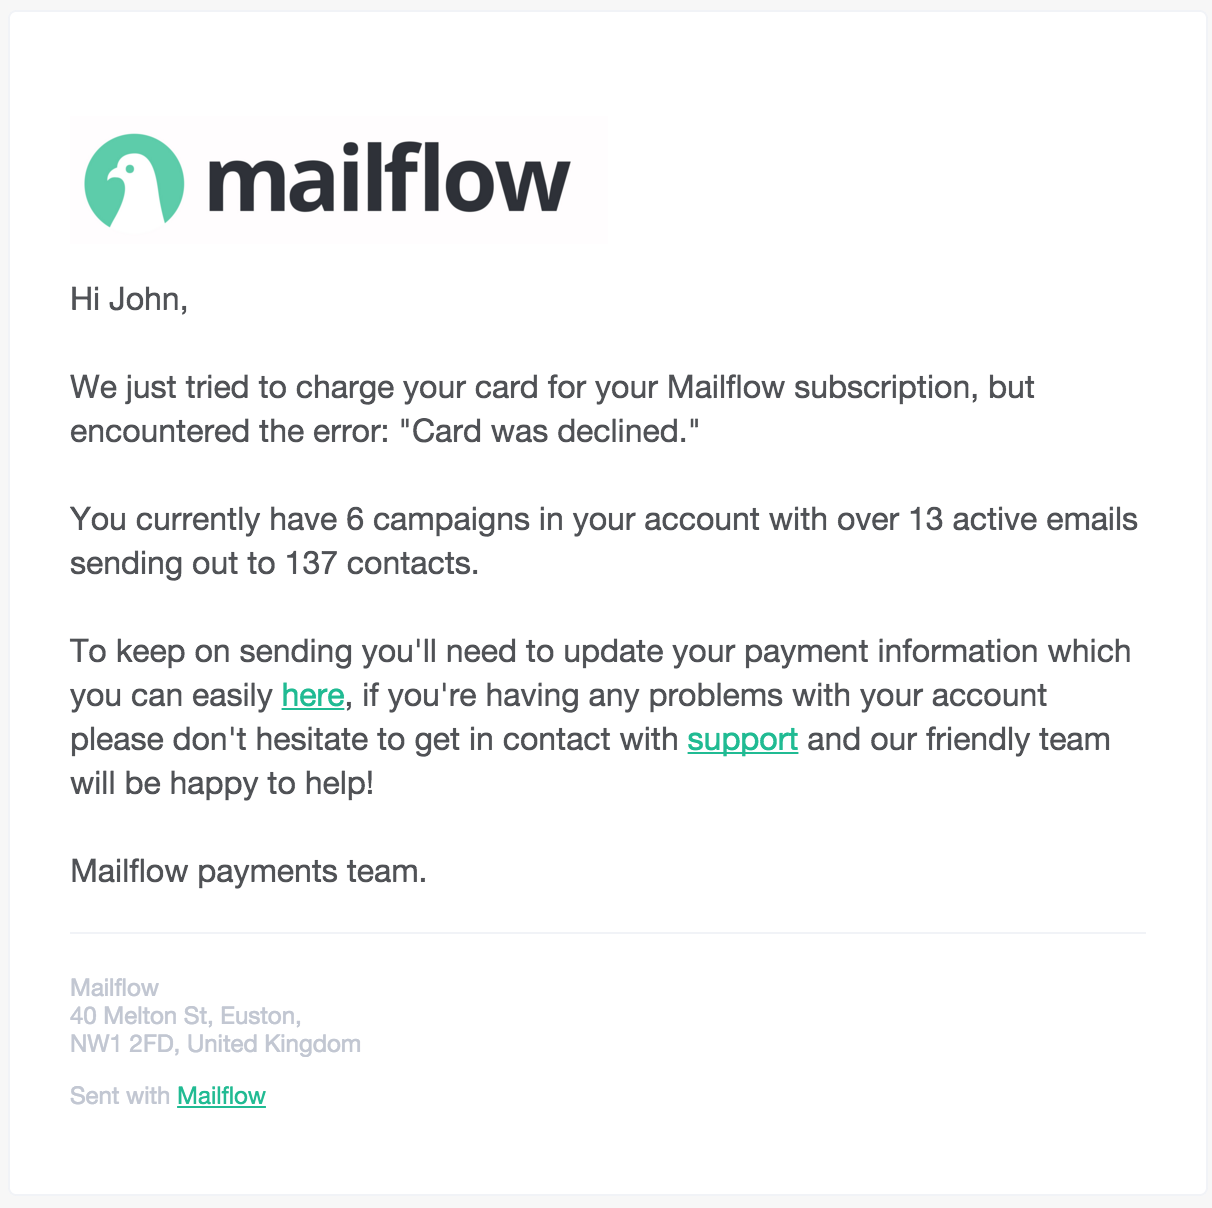 mailflow dunning process email